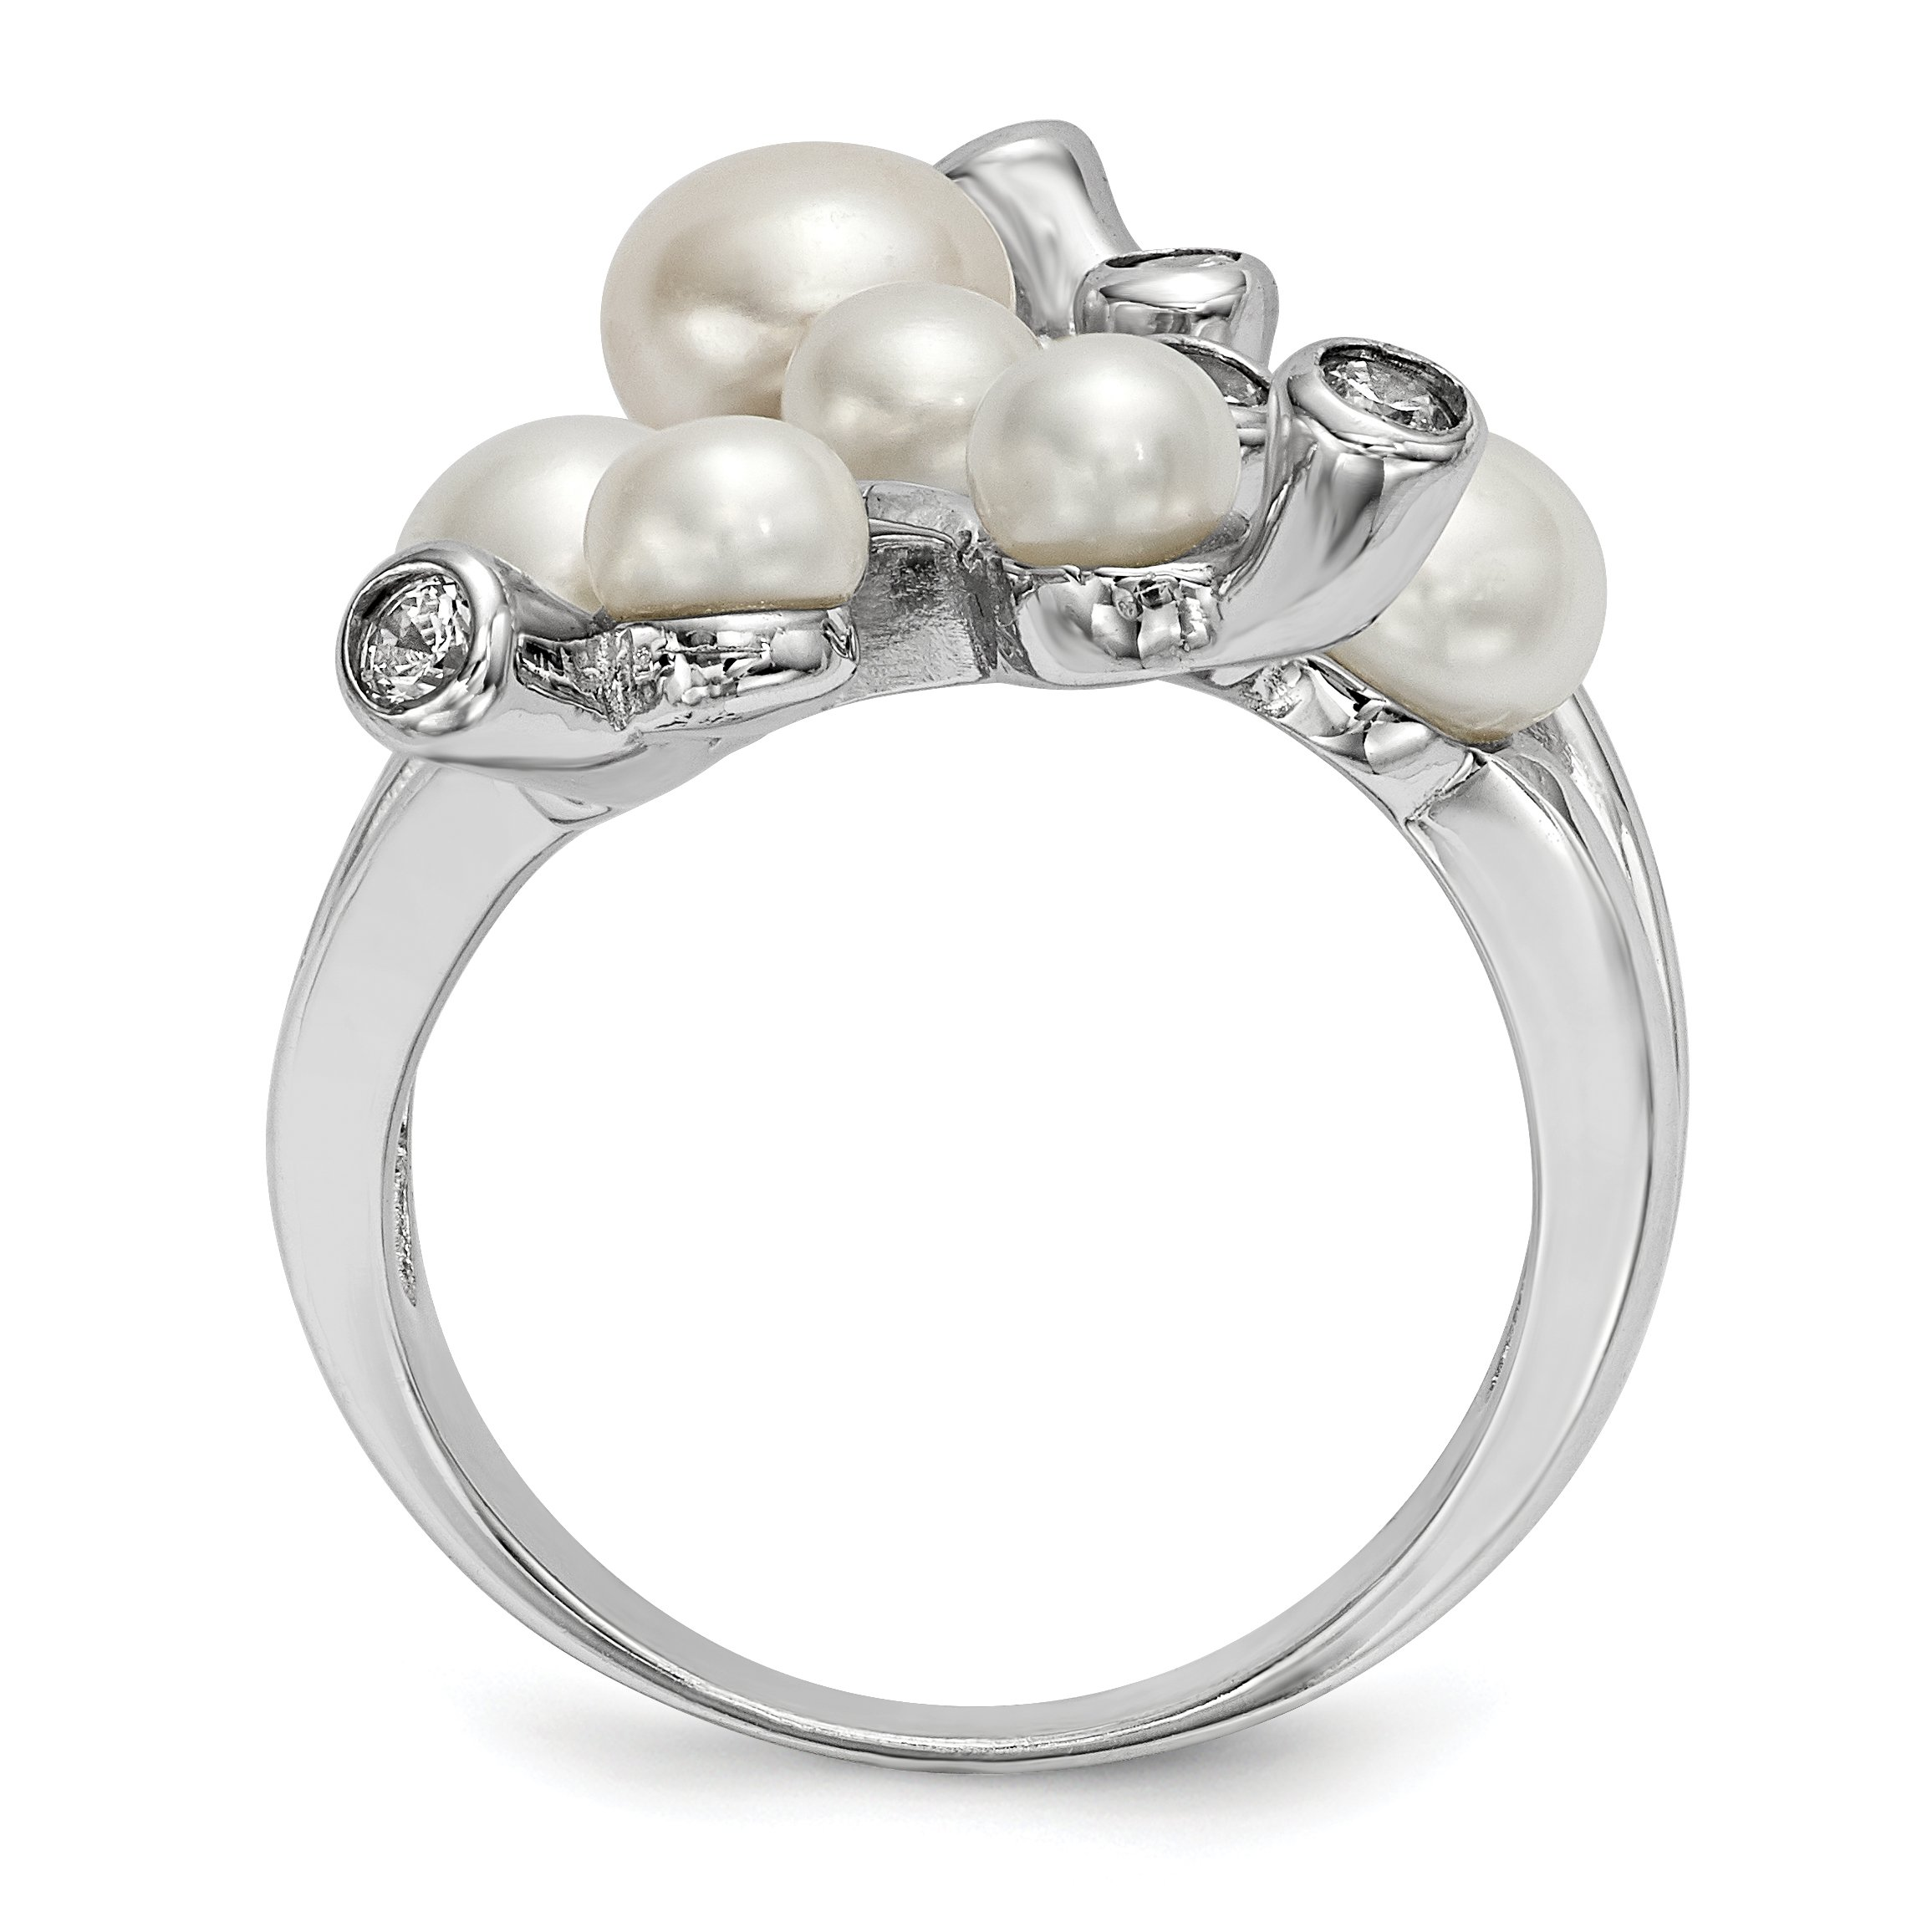 ICE CARATS 925 Sterling Silver Rh 4 7mm Wt Button Freshwater Cultured Pearl Cubic Zirconia Cz Band Ring Size 7.00 Fine Jewelry Gift Set For Women Heart by ICE CARATS (Image #2)